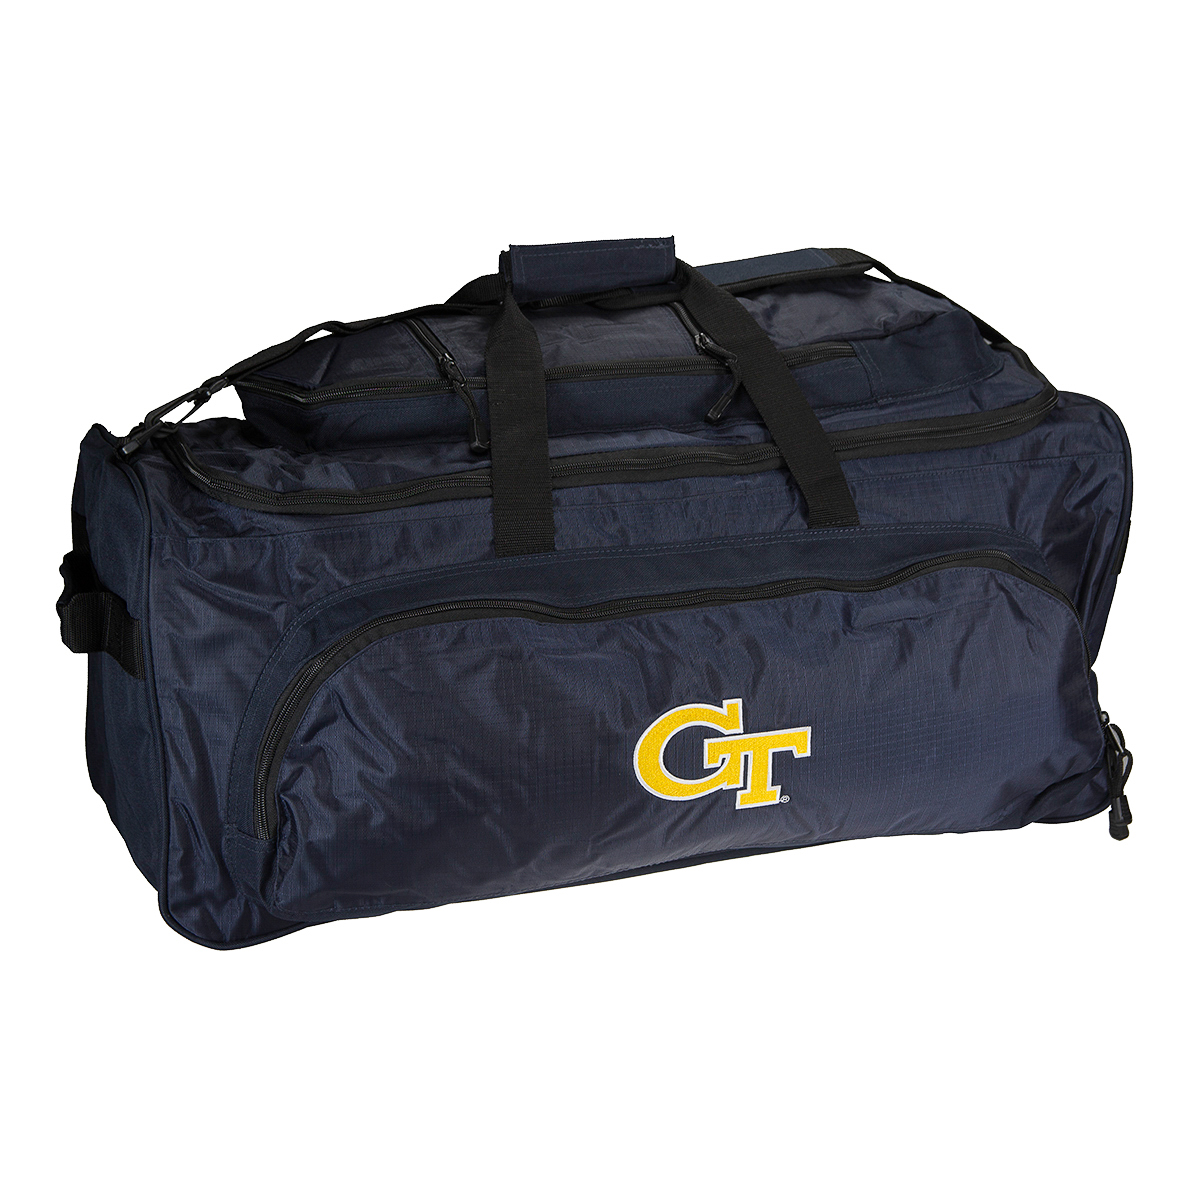 NCAA Heavy Duty Collegiate Sport 27 Large Duffel Tote Bag School College Duffle by